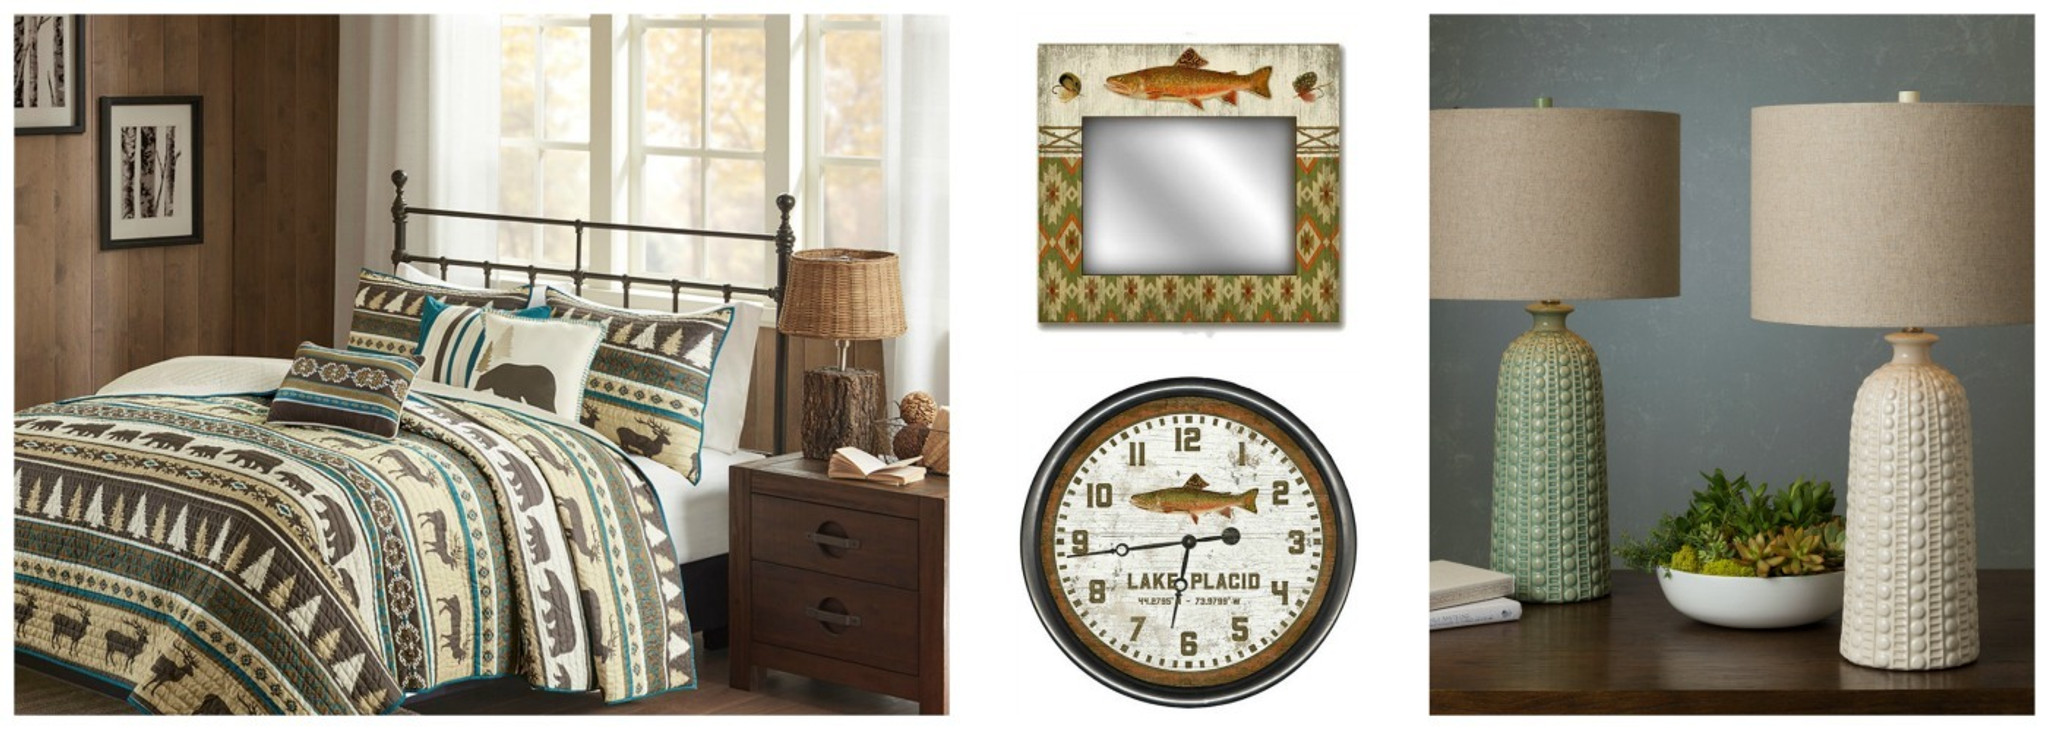 Shop Caronu0027s New Lake And Lodge Living Look! We Are Curating A Whole New Home  Decor Collection Of Lake And Mountain Cabin Styles For Our Customers That  Are ...